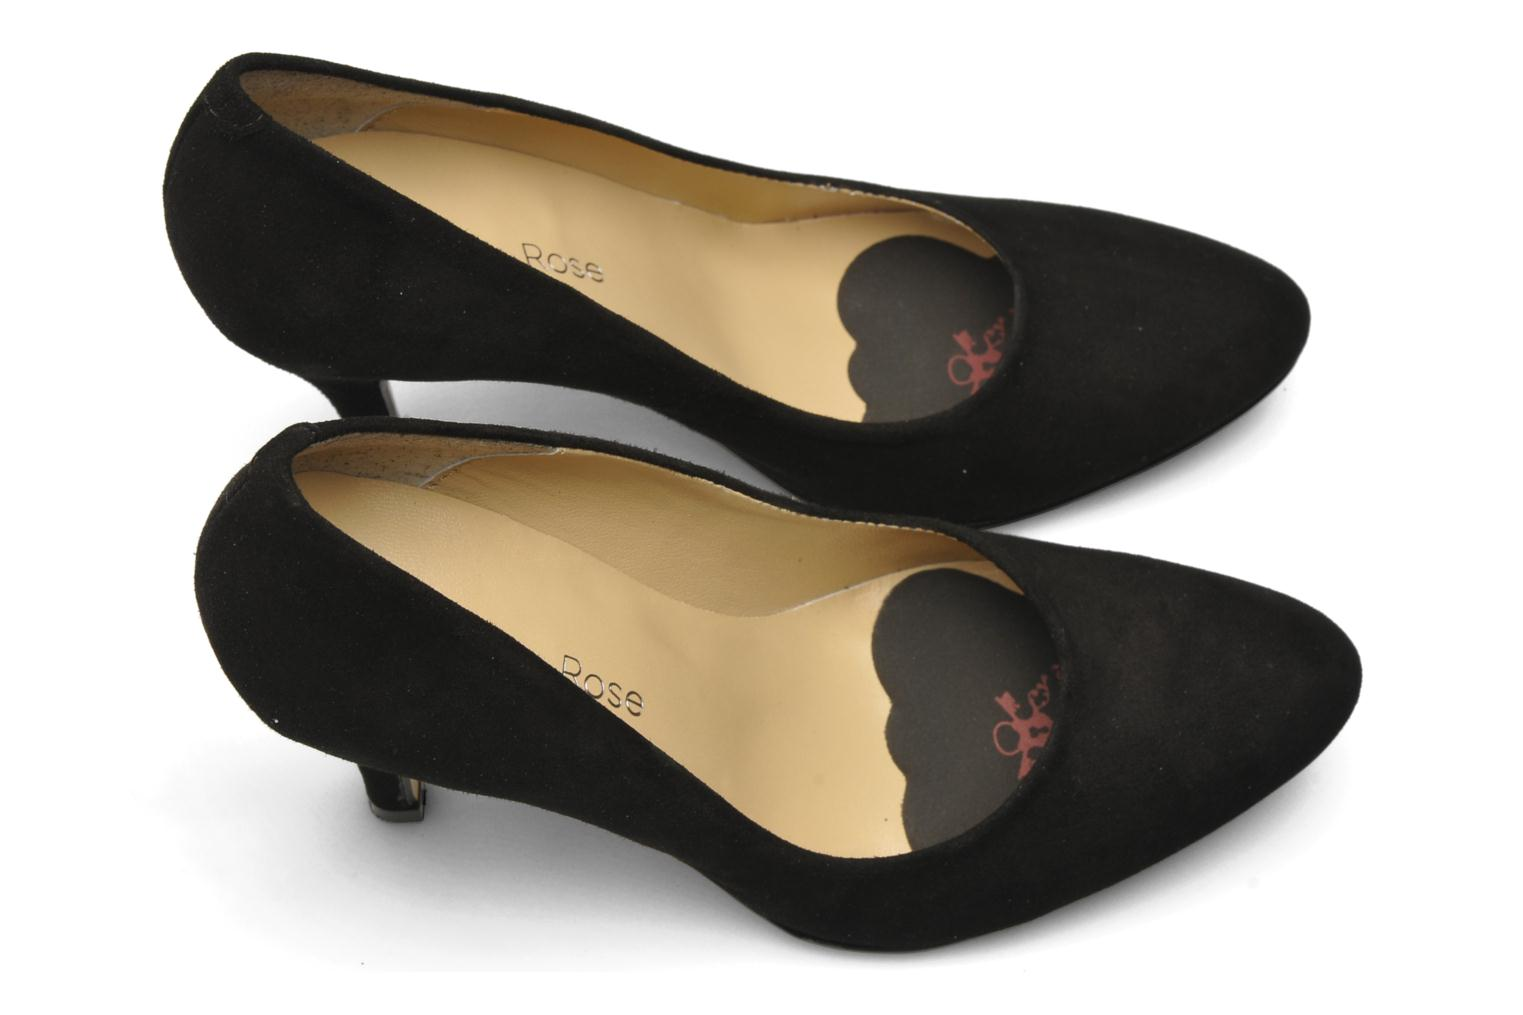 Insoles Lady's Secret No scratch! Non-slip Foot Pillows Black view from the left